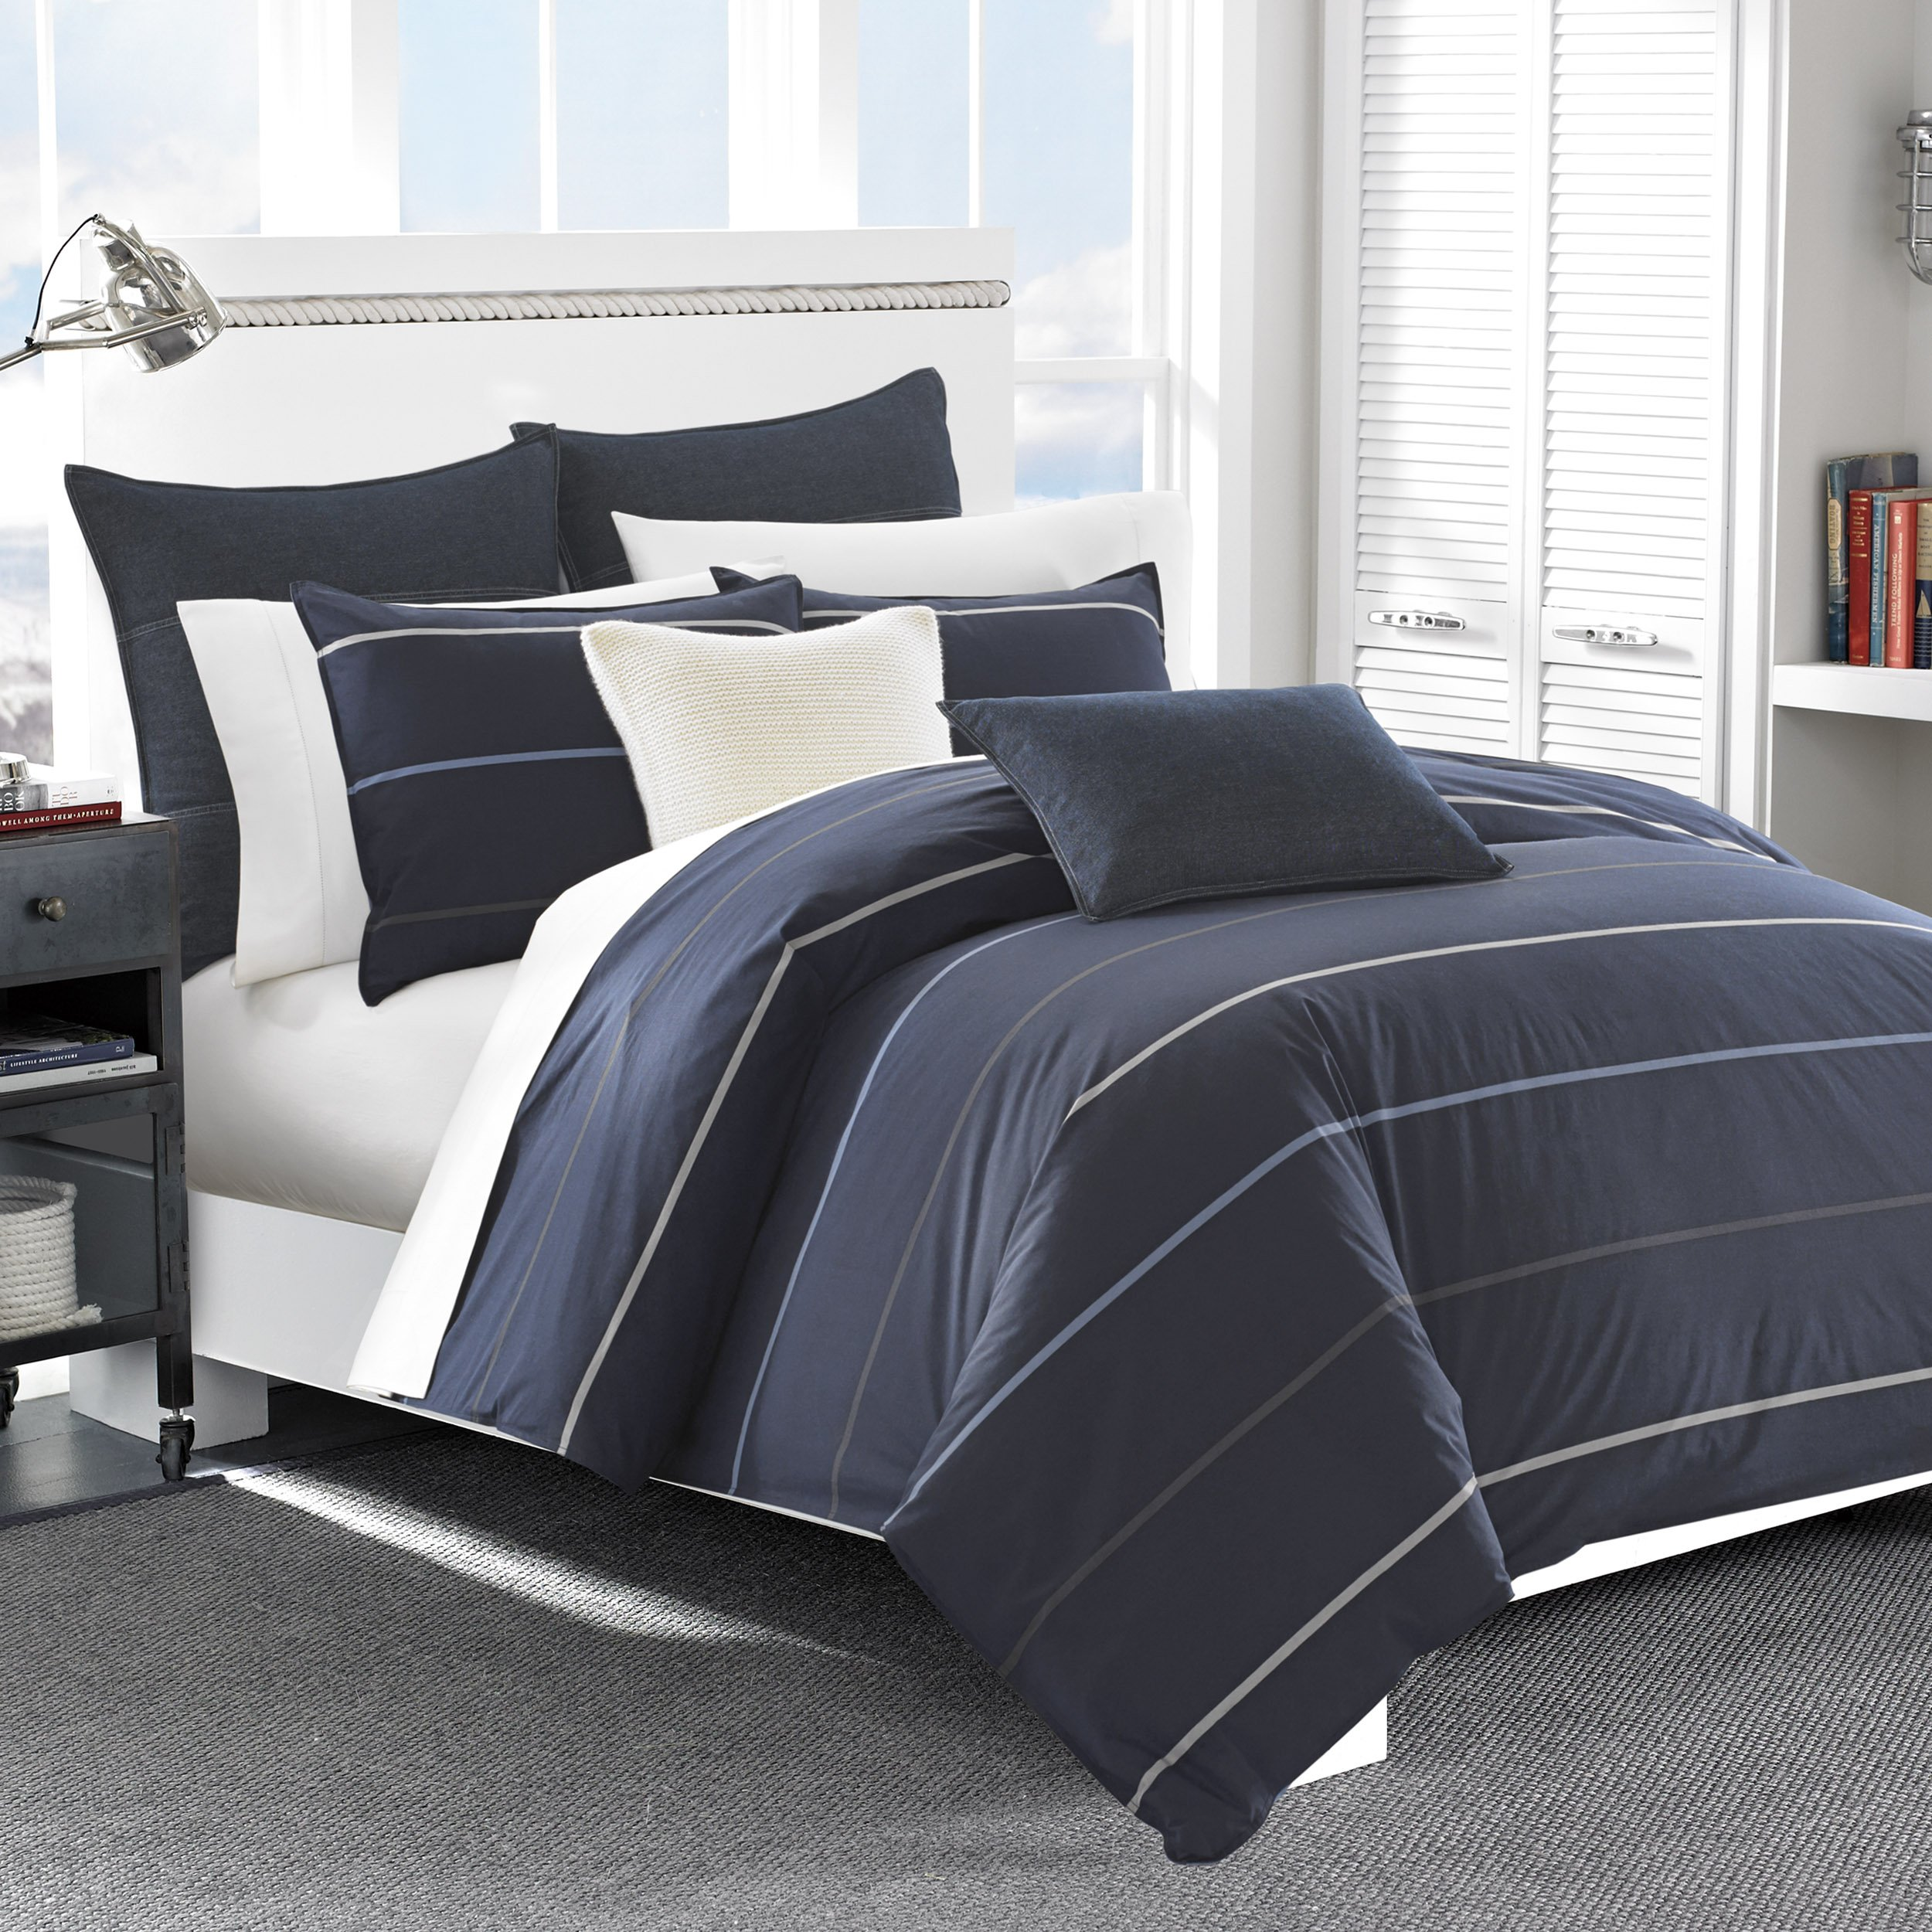 Nautica Southport Cotton Comforter Set, Full/Queen, Blue/White